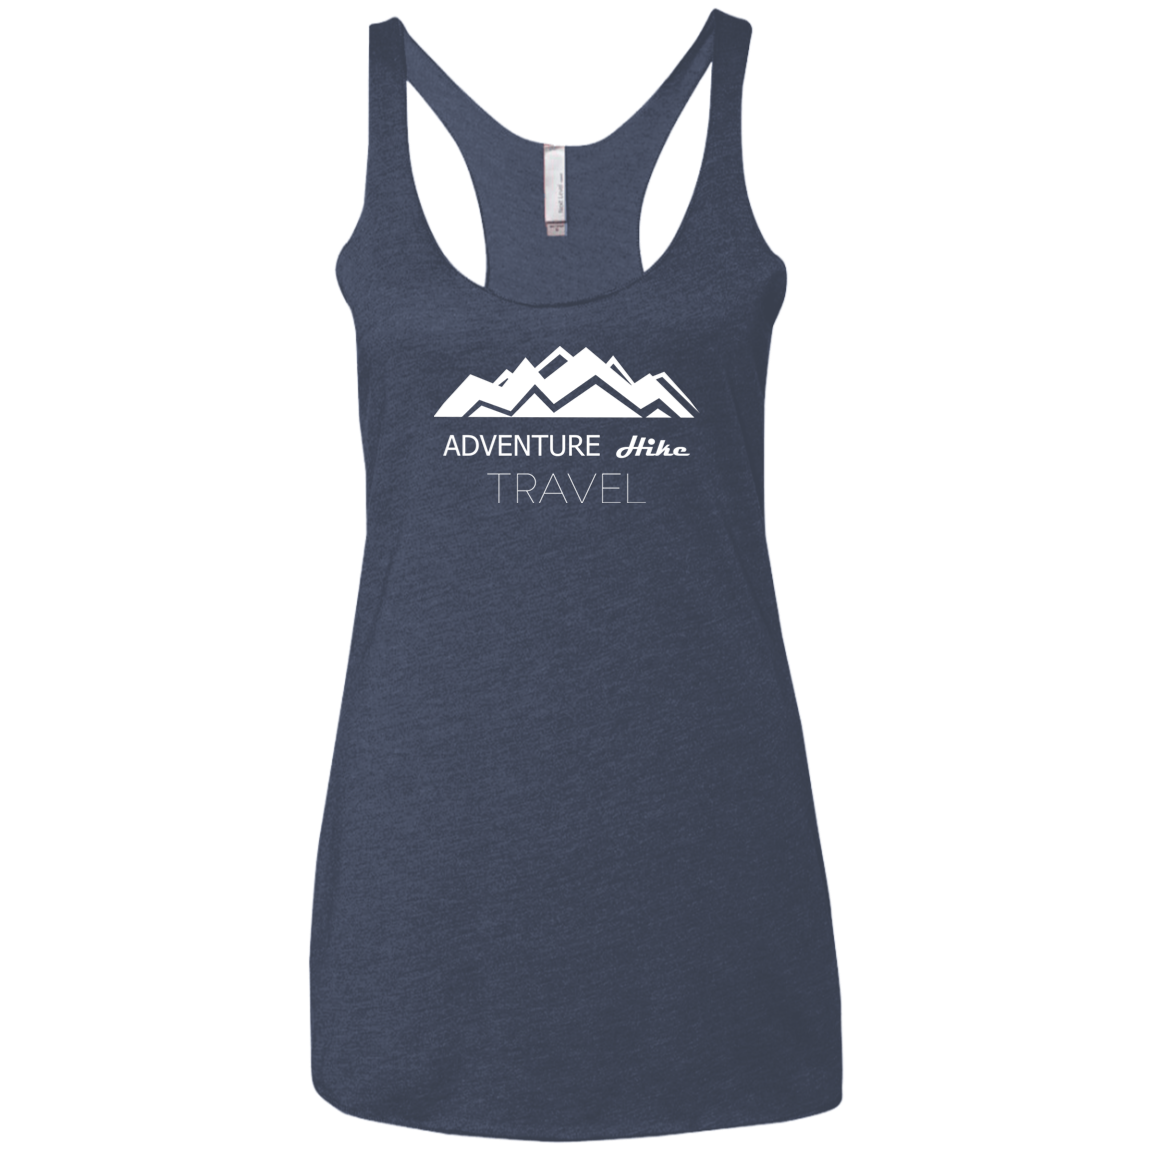 Adventure Hike Travel Next Level Ladies Triblend Racerback Tank In 2020 Adventure Outfit Hiking Shirts Hiking Tank